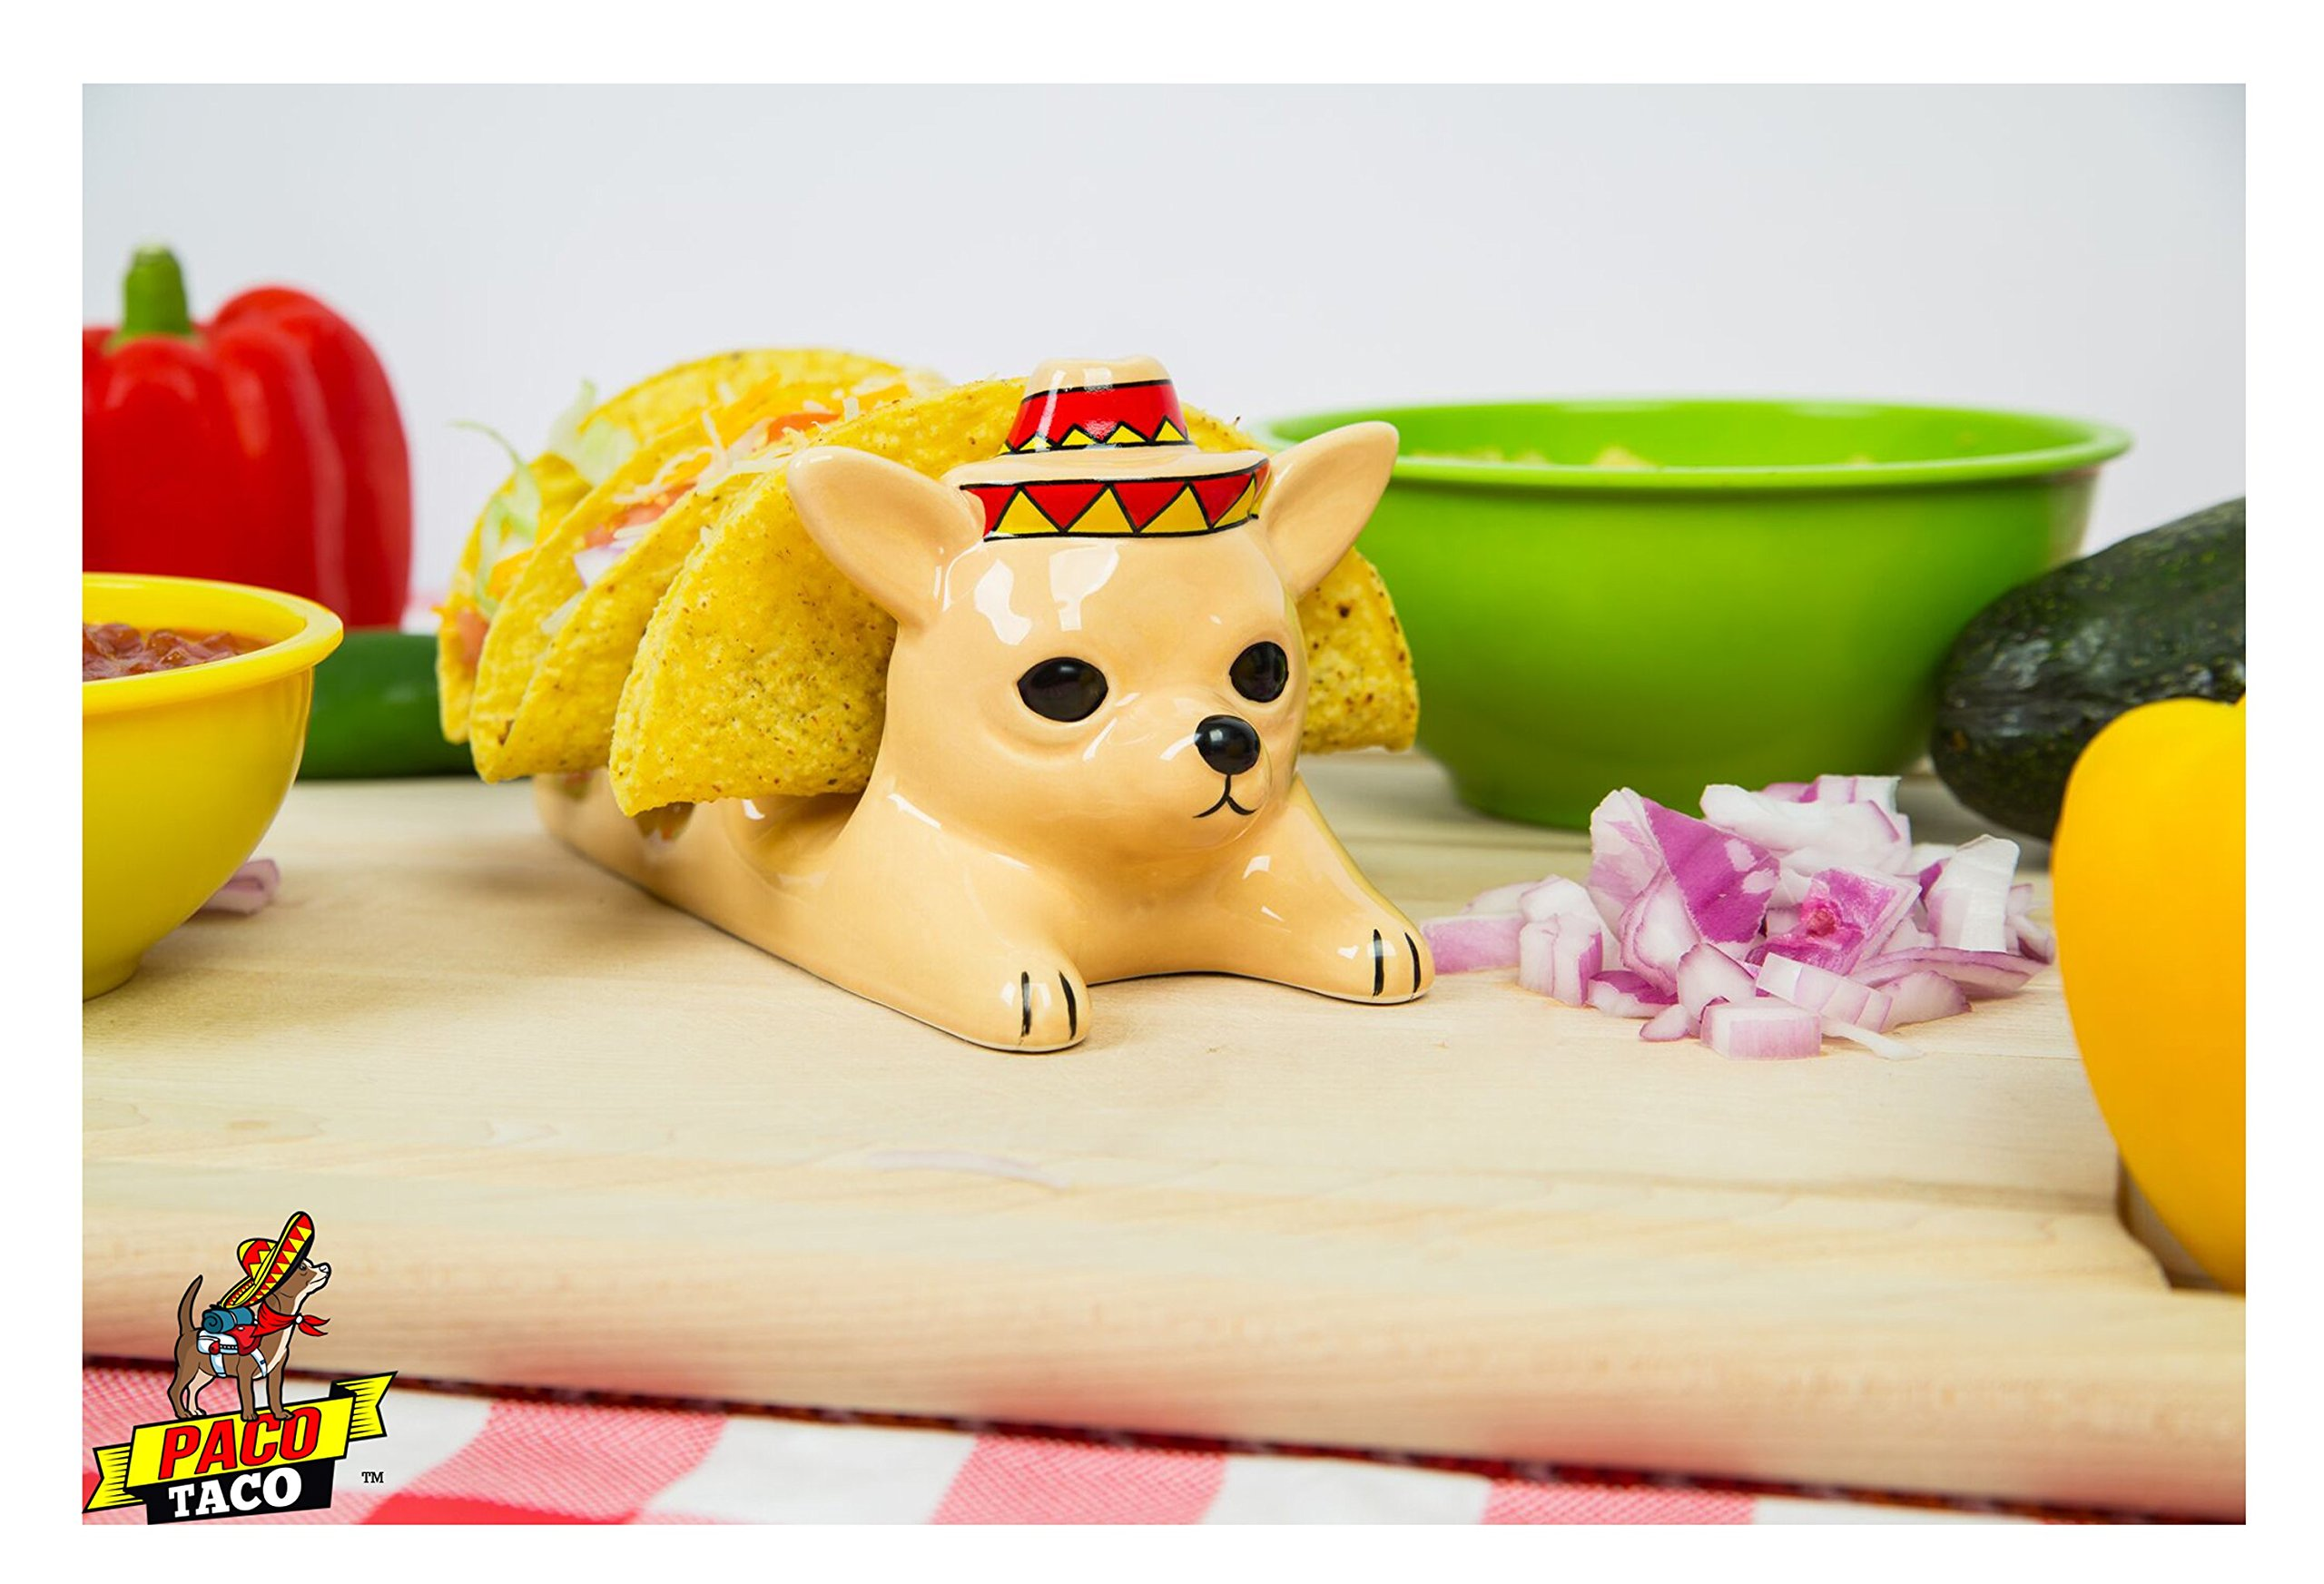 Chihuahua Taco Holder with Festive Sombrero - The Original PacoTaco - Fun Decorative Taco Holder - Restaurant Quality Hand Made Ceramic - 3 Tacos - Adorable Novelty - Dishwasher Safe